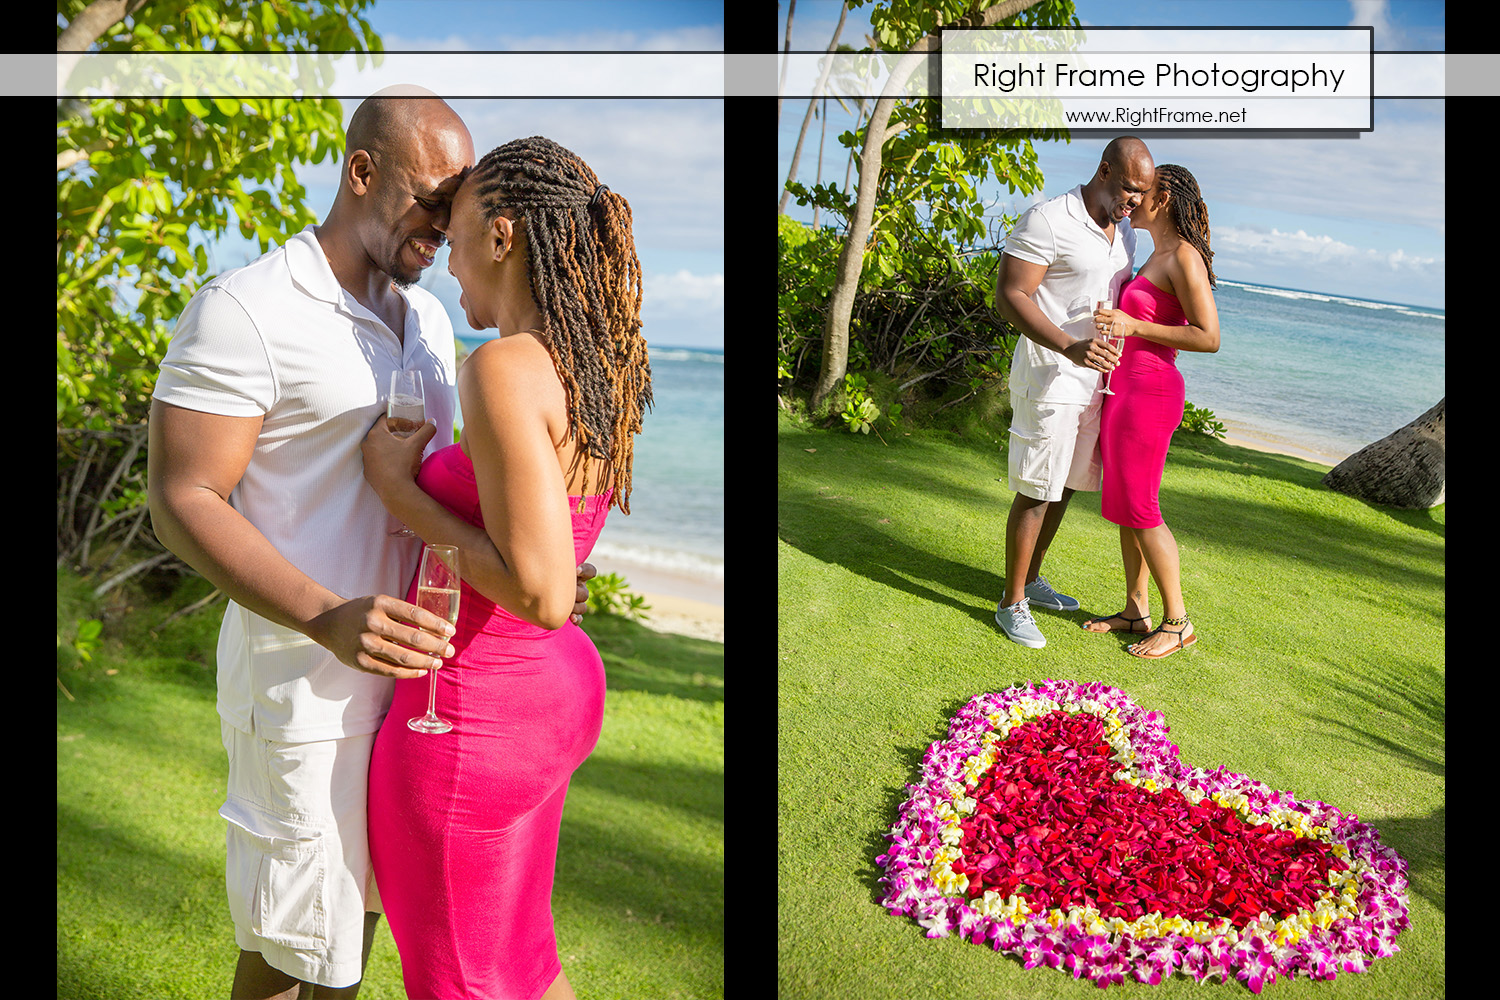 Secret Proposal Photography in Hawaii Oahu